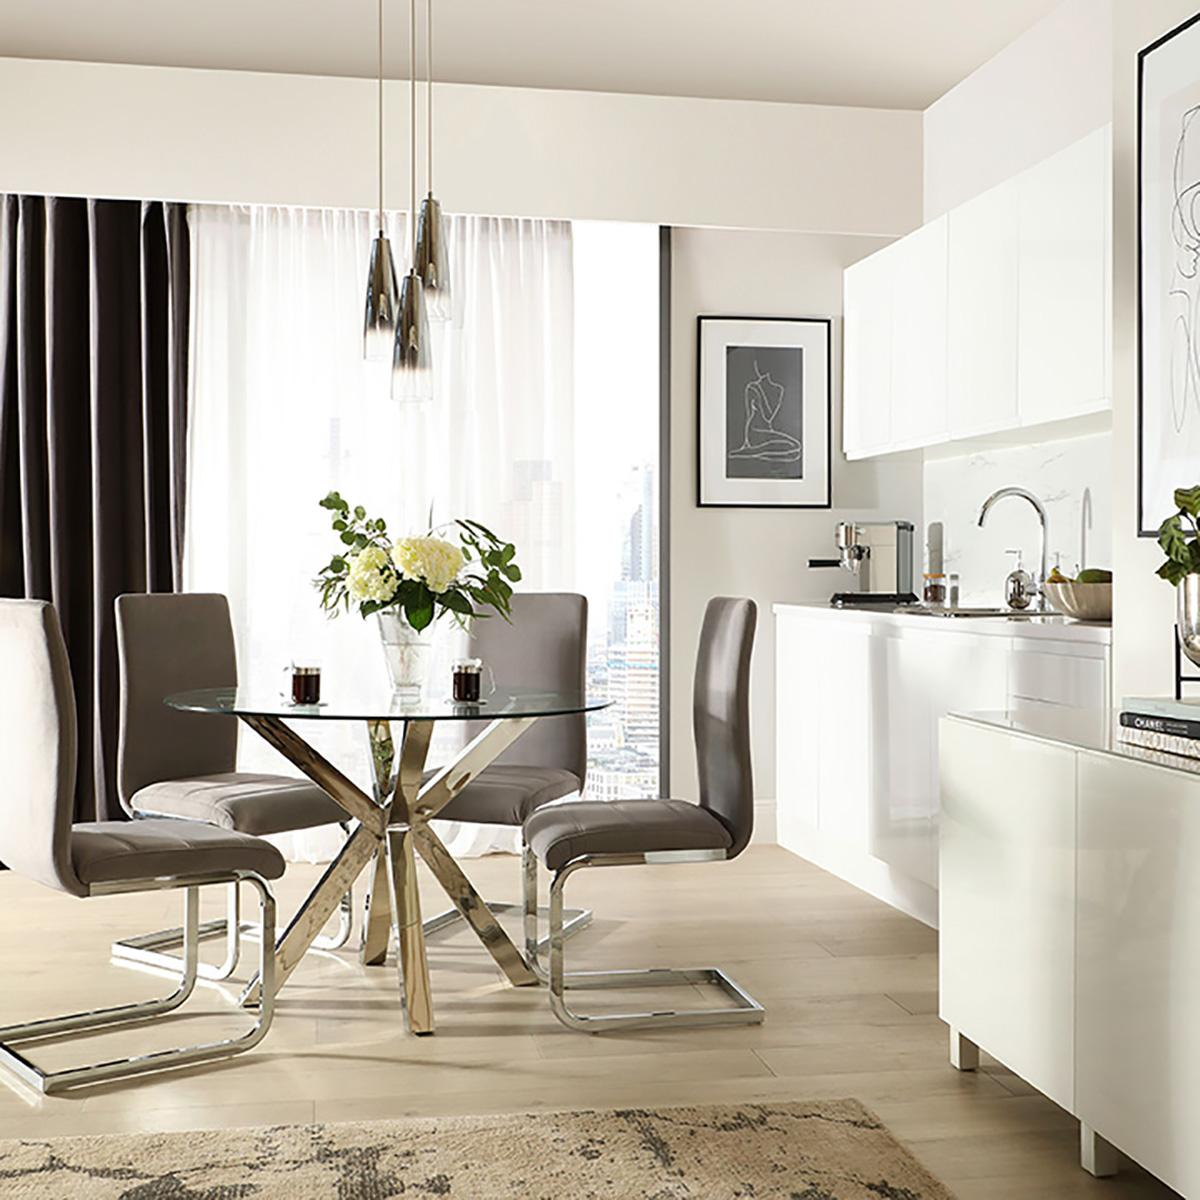 Plaza Table and Perth Chairs - Designer Living